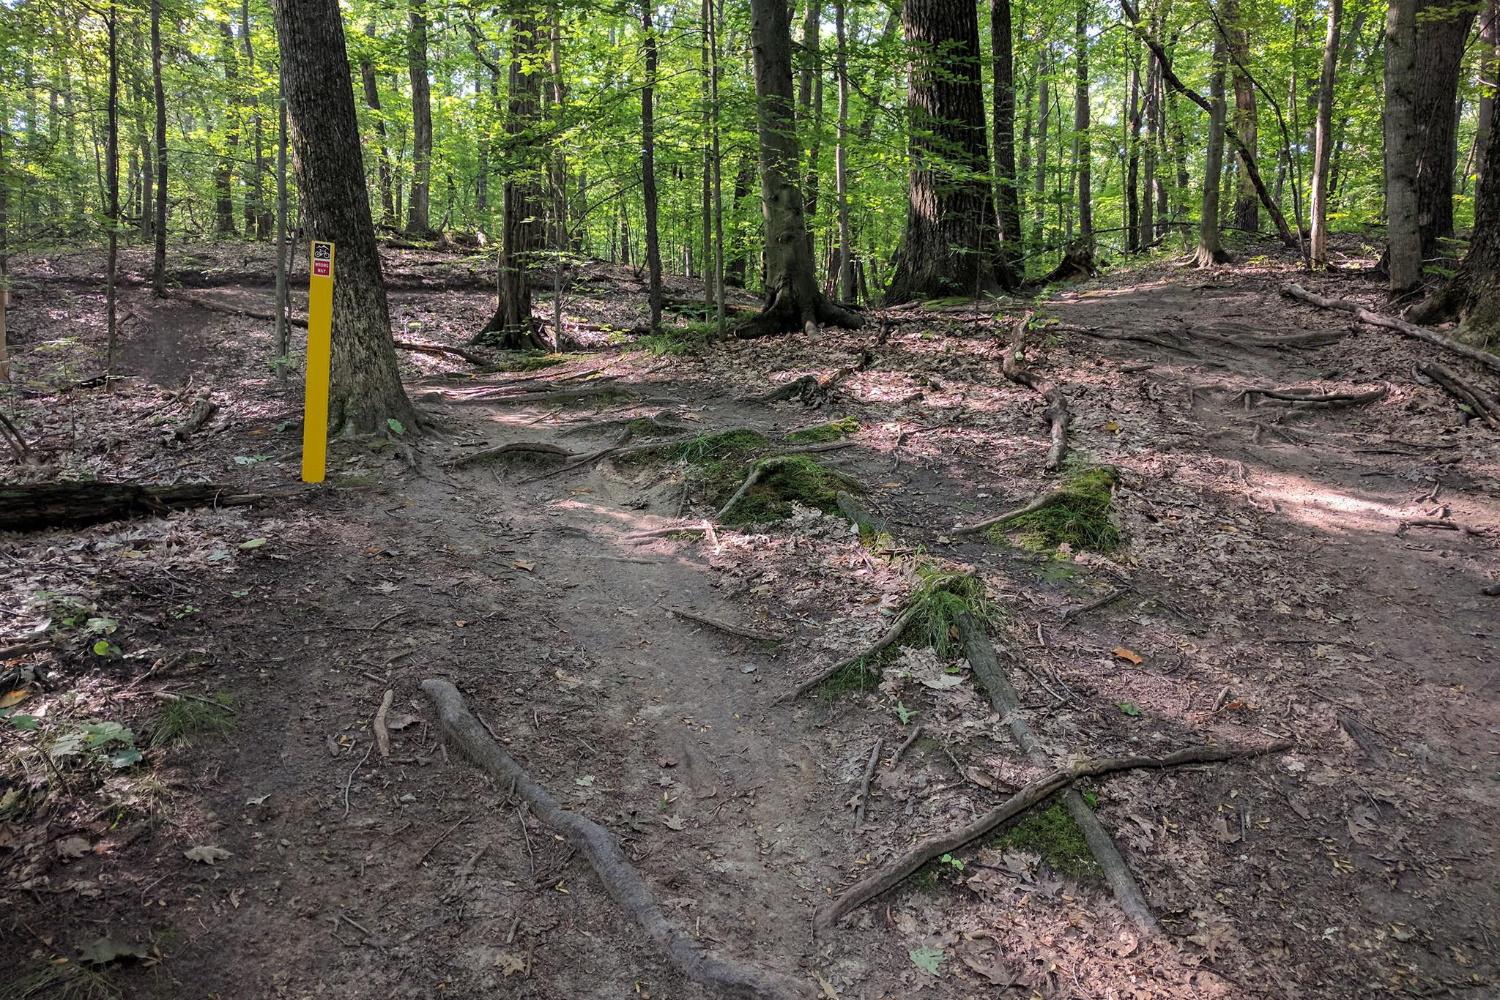 mountain bike trail with roots